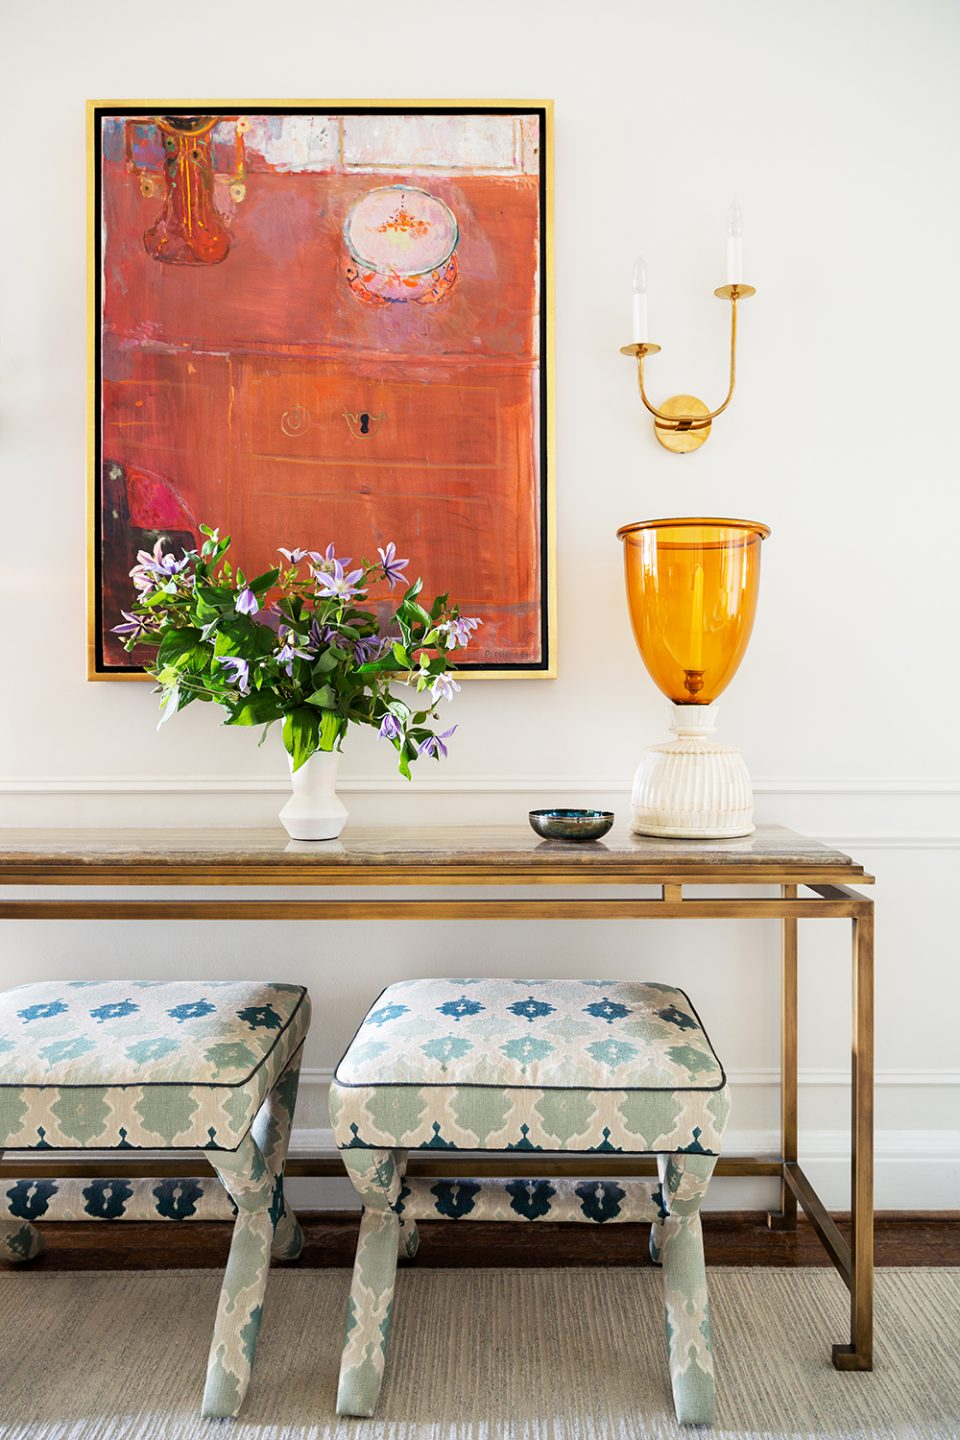 Bella Mancini's Positive Outlook Takes Form in Colorfully Patterned Interiors